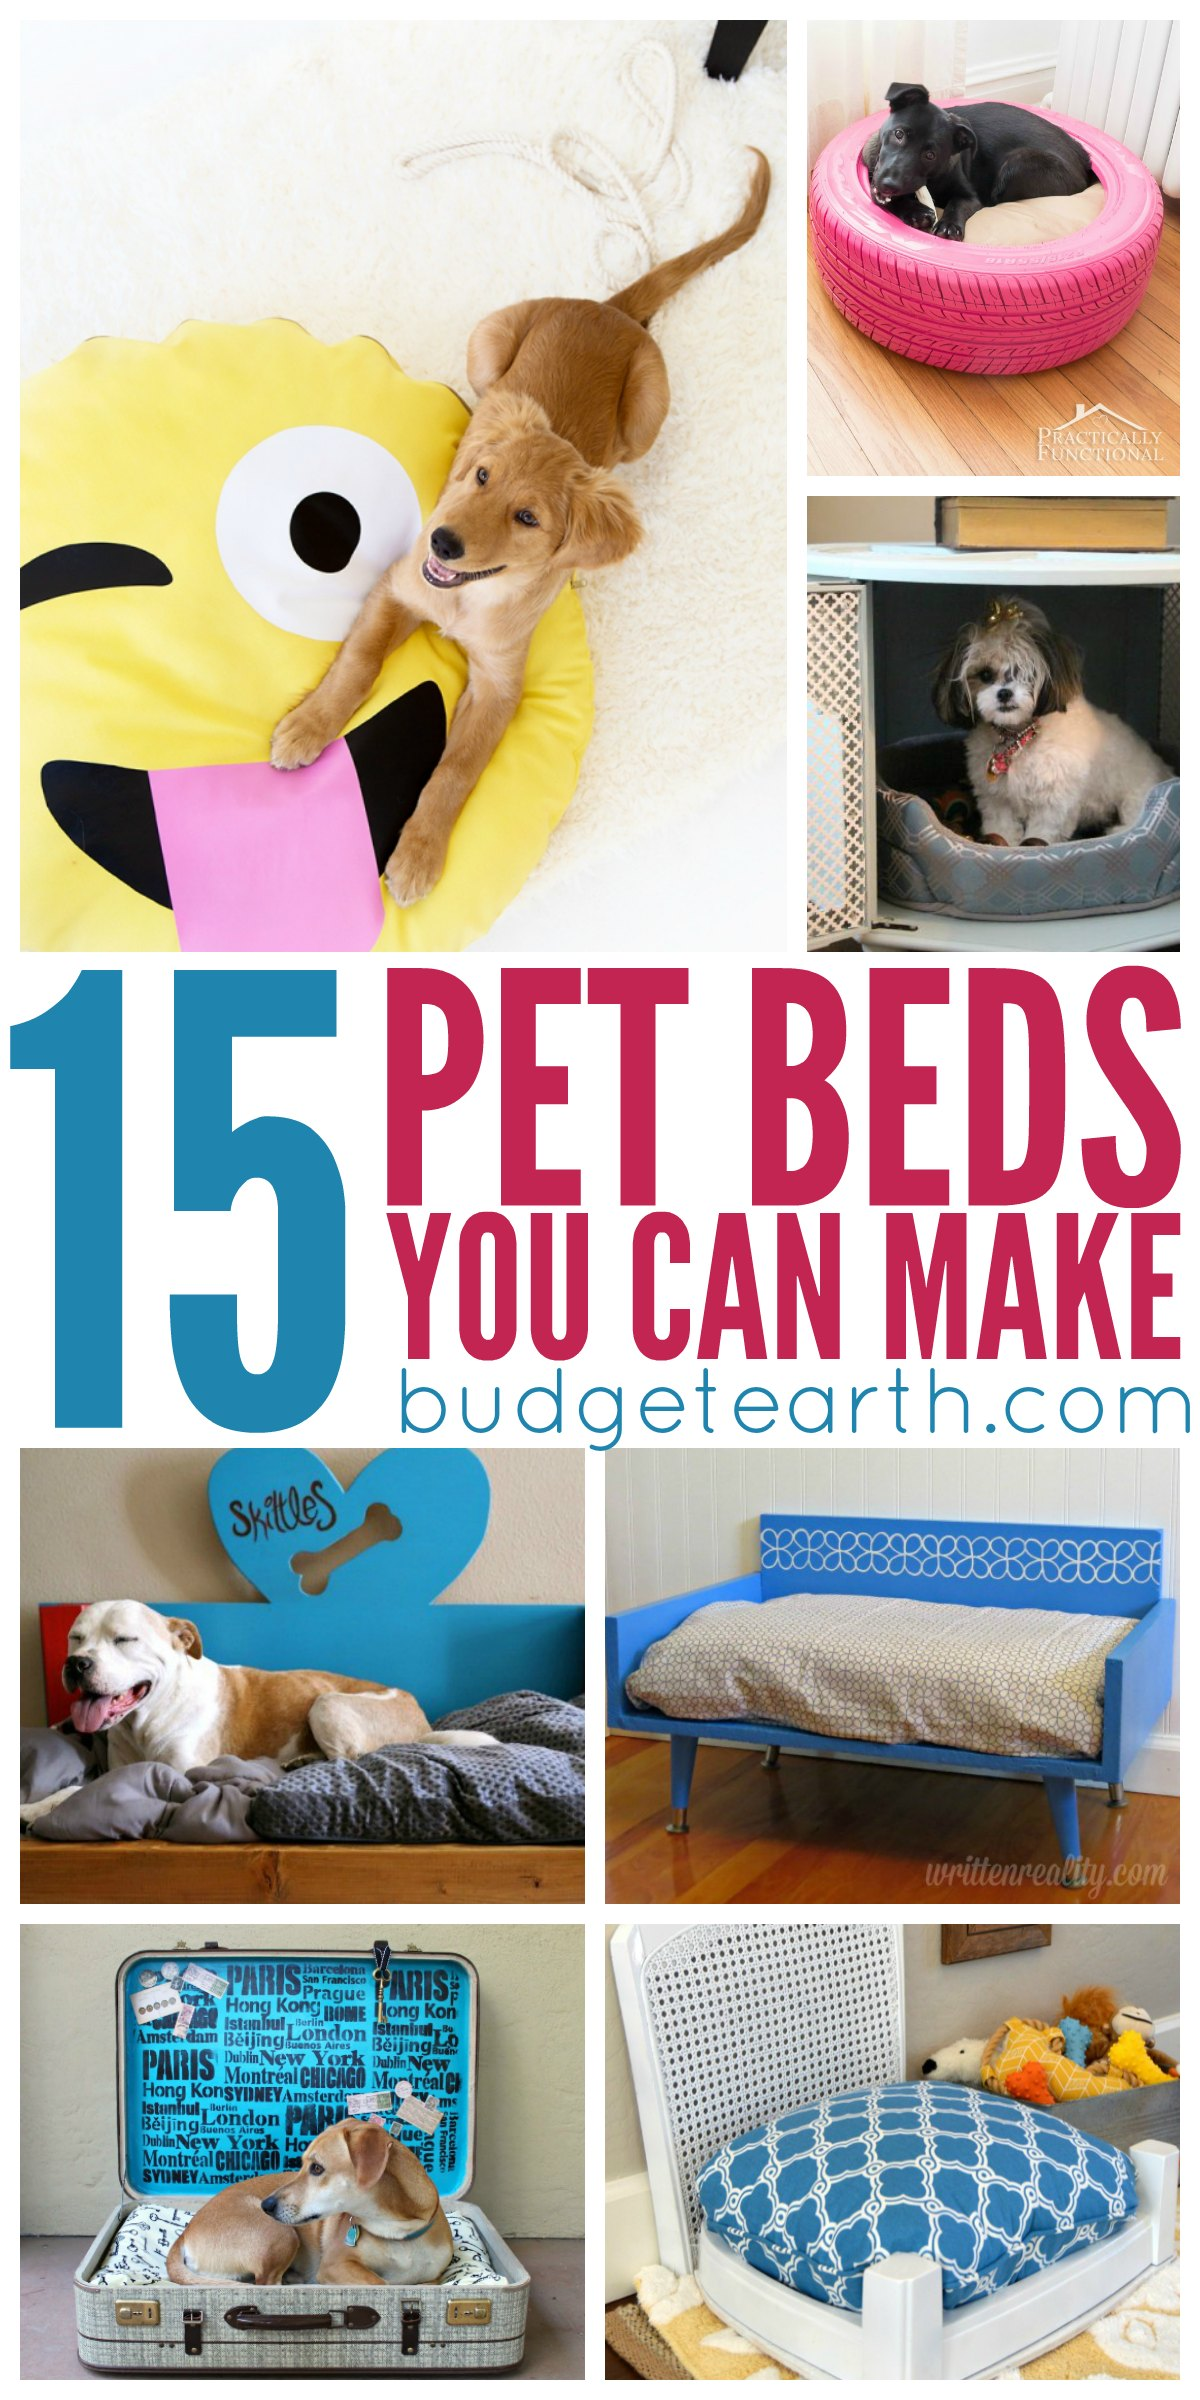 15 Diy Pet Beds Your Can Make At Home Budget Earth